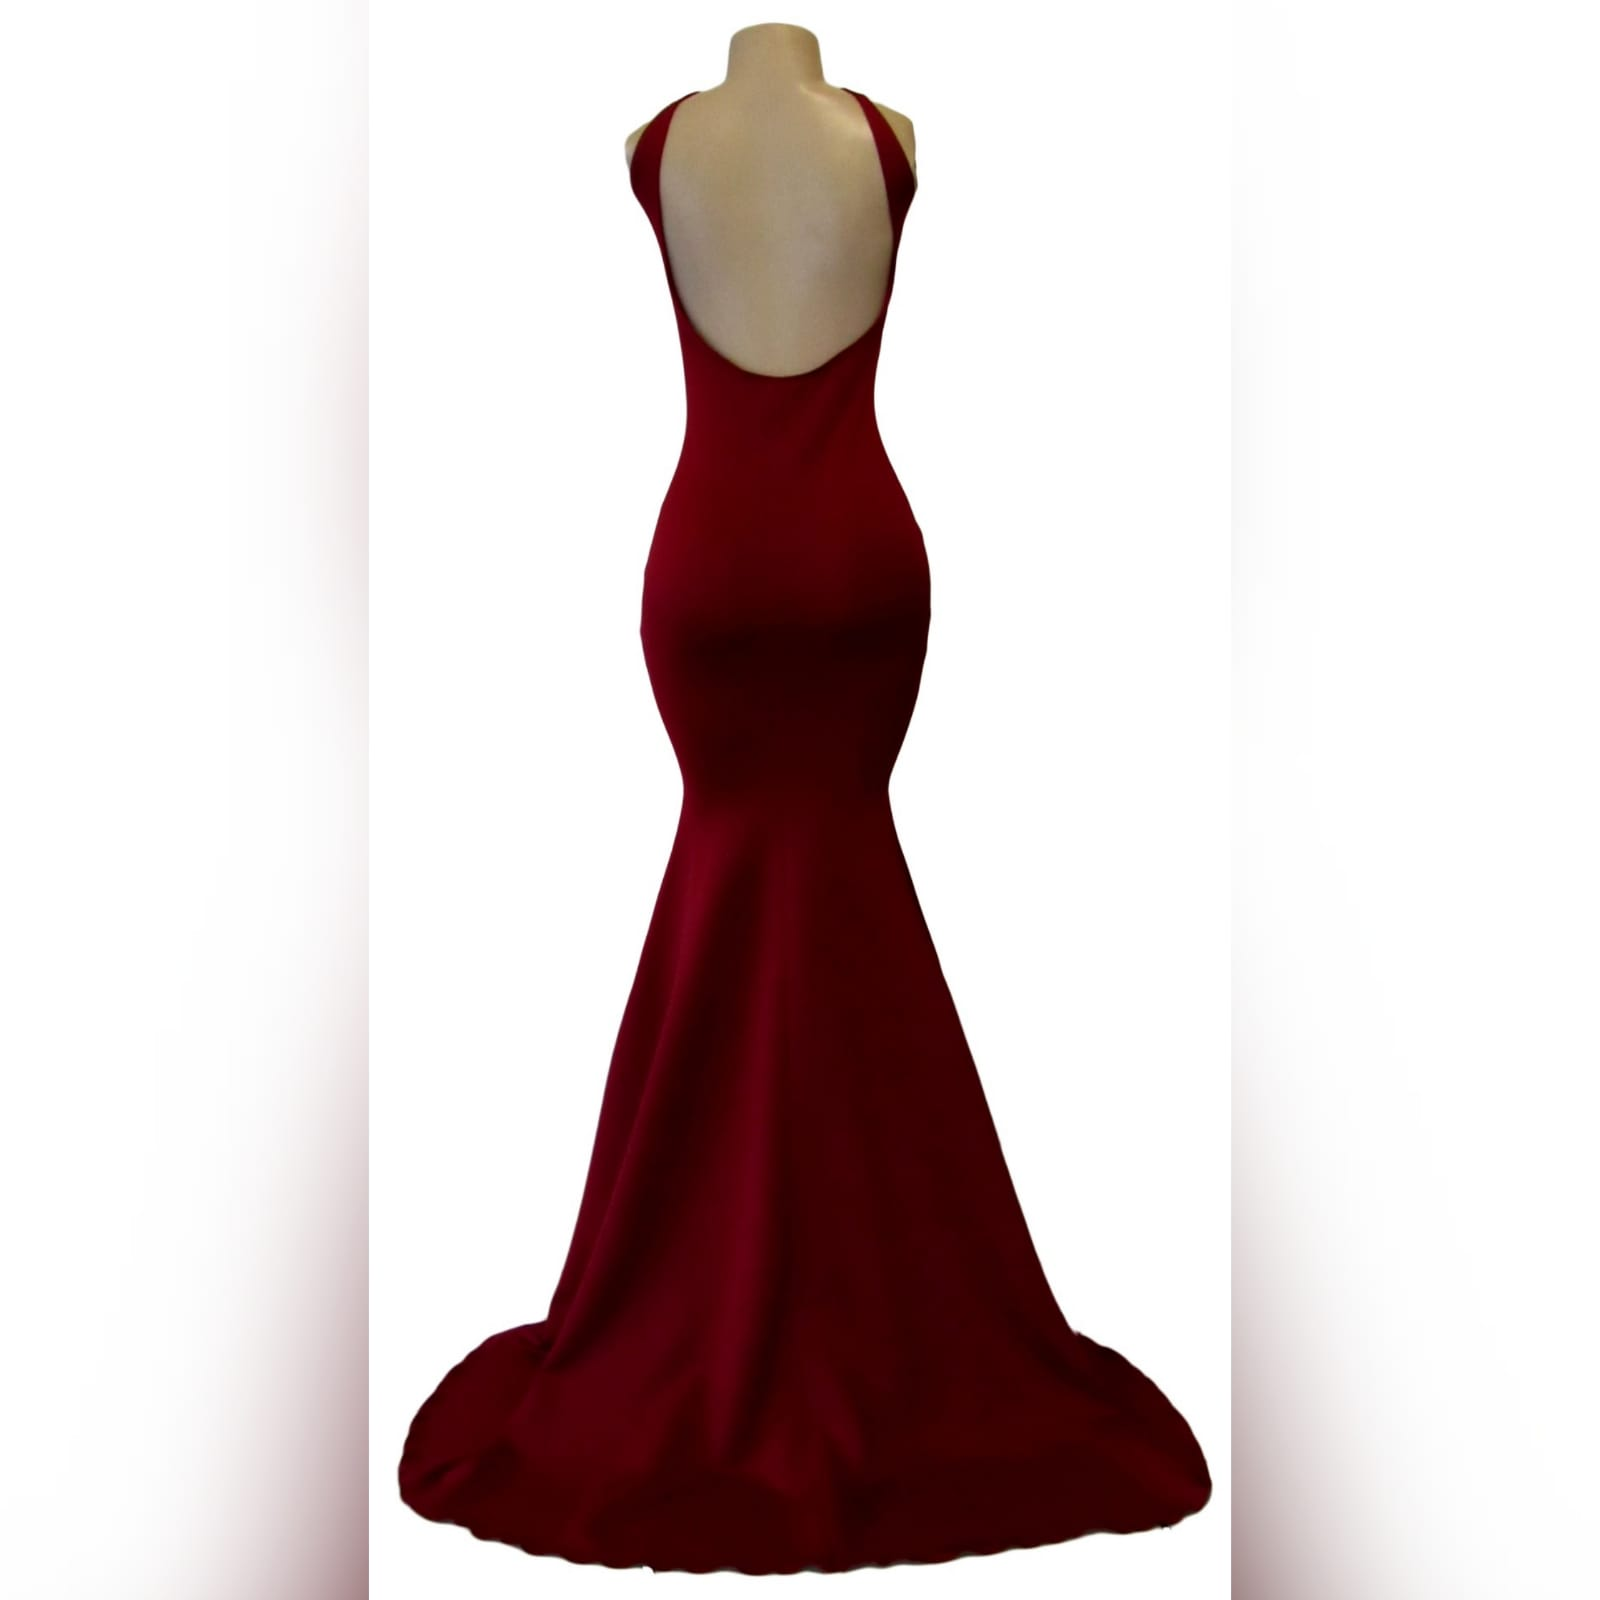 Maroon simple soft mermaid prom dress 5 maroon simple soft mermaid prom dress with a squared neckline, low rounded open back and a little train.